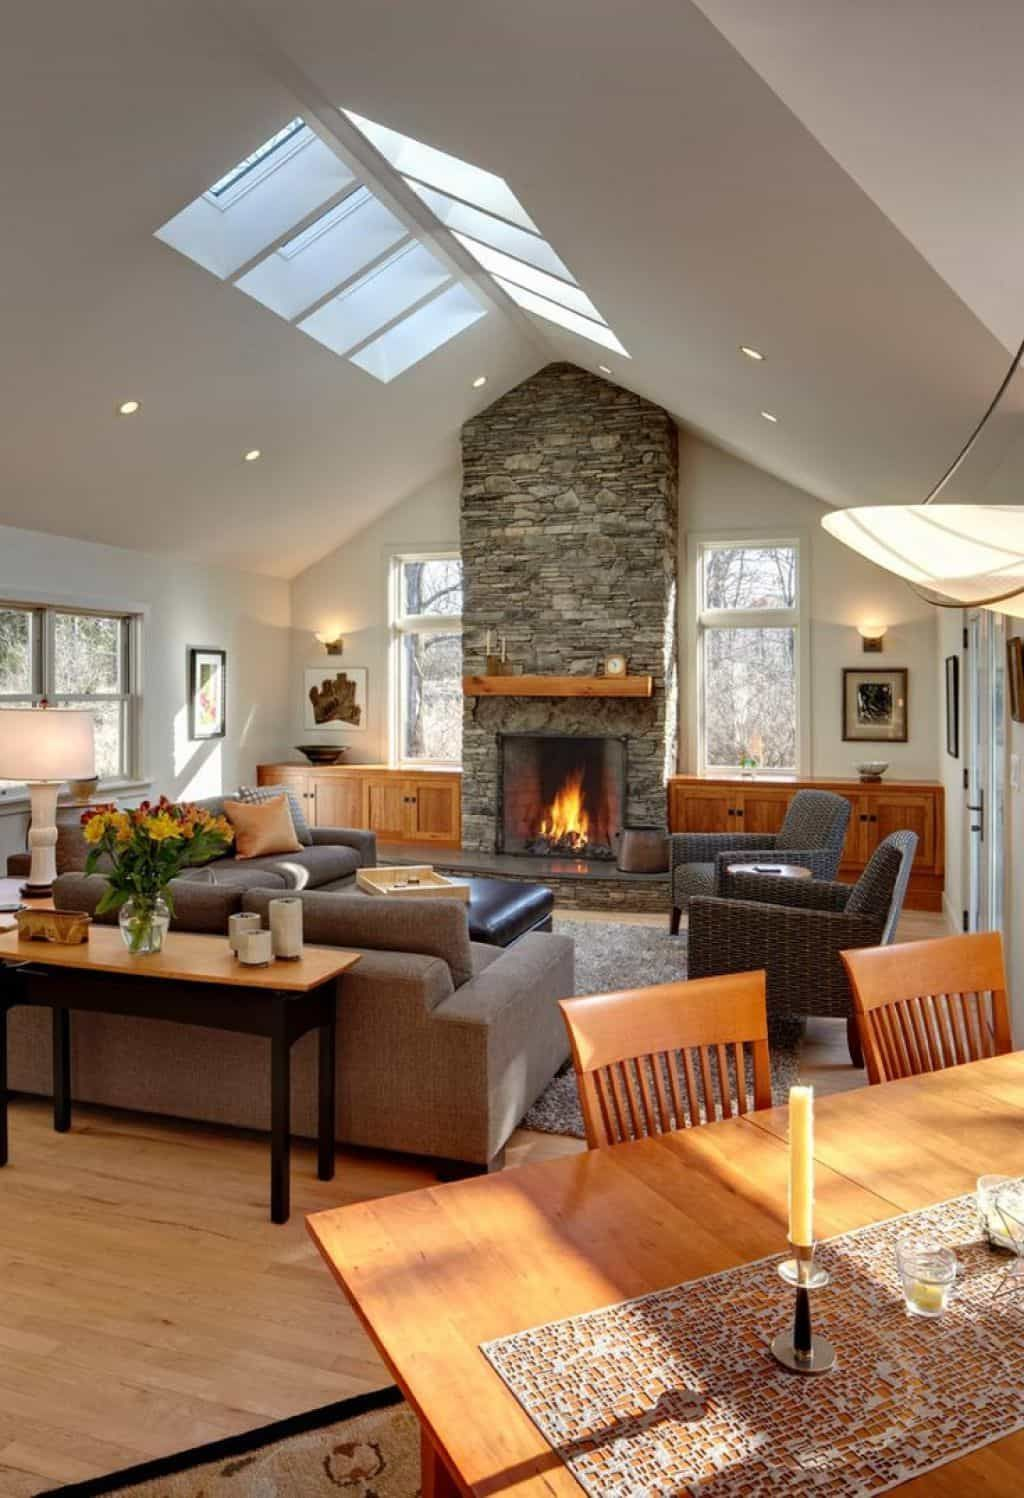 Comfortable Living Room Designed With Stone Fireplace And Skylights Also Recessed Lights images